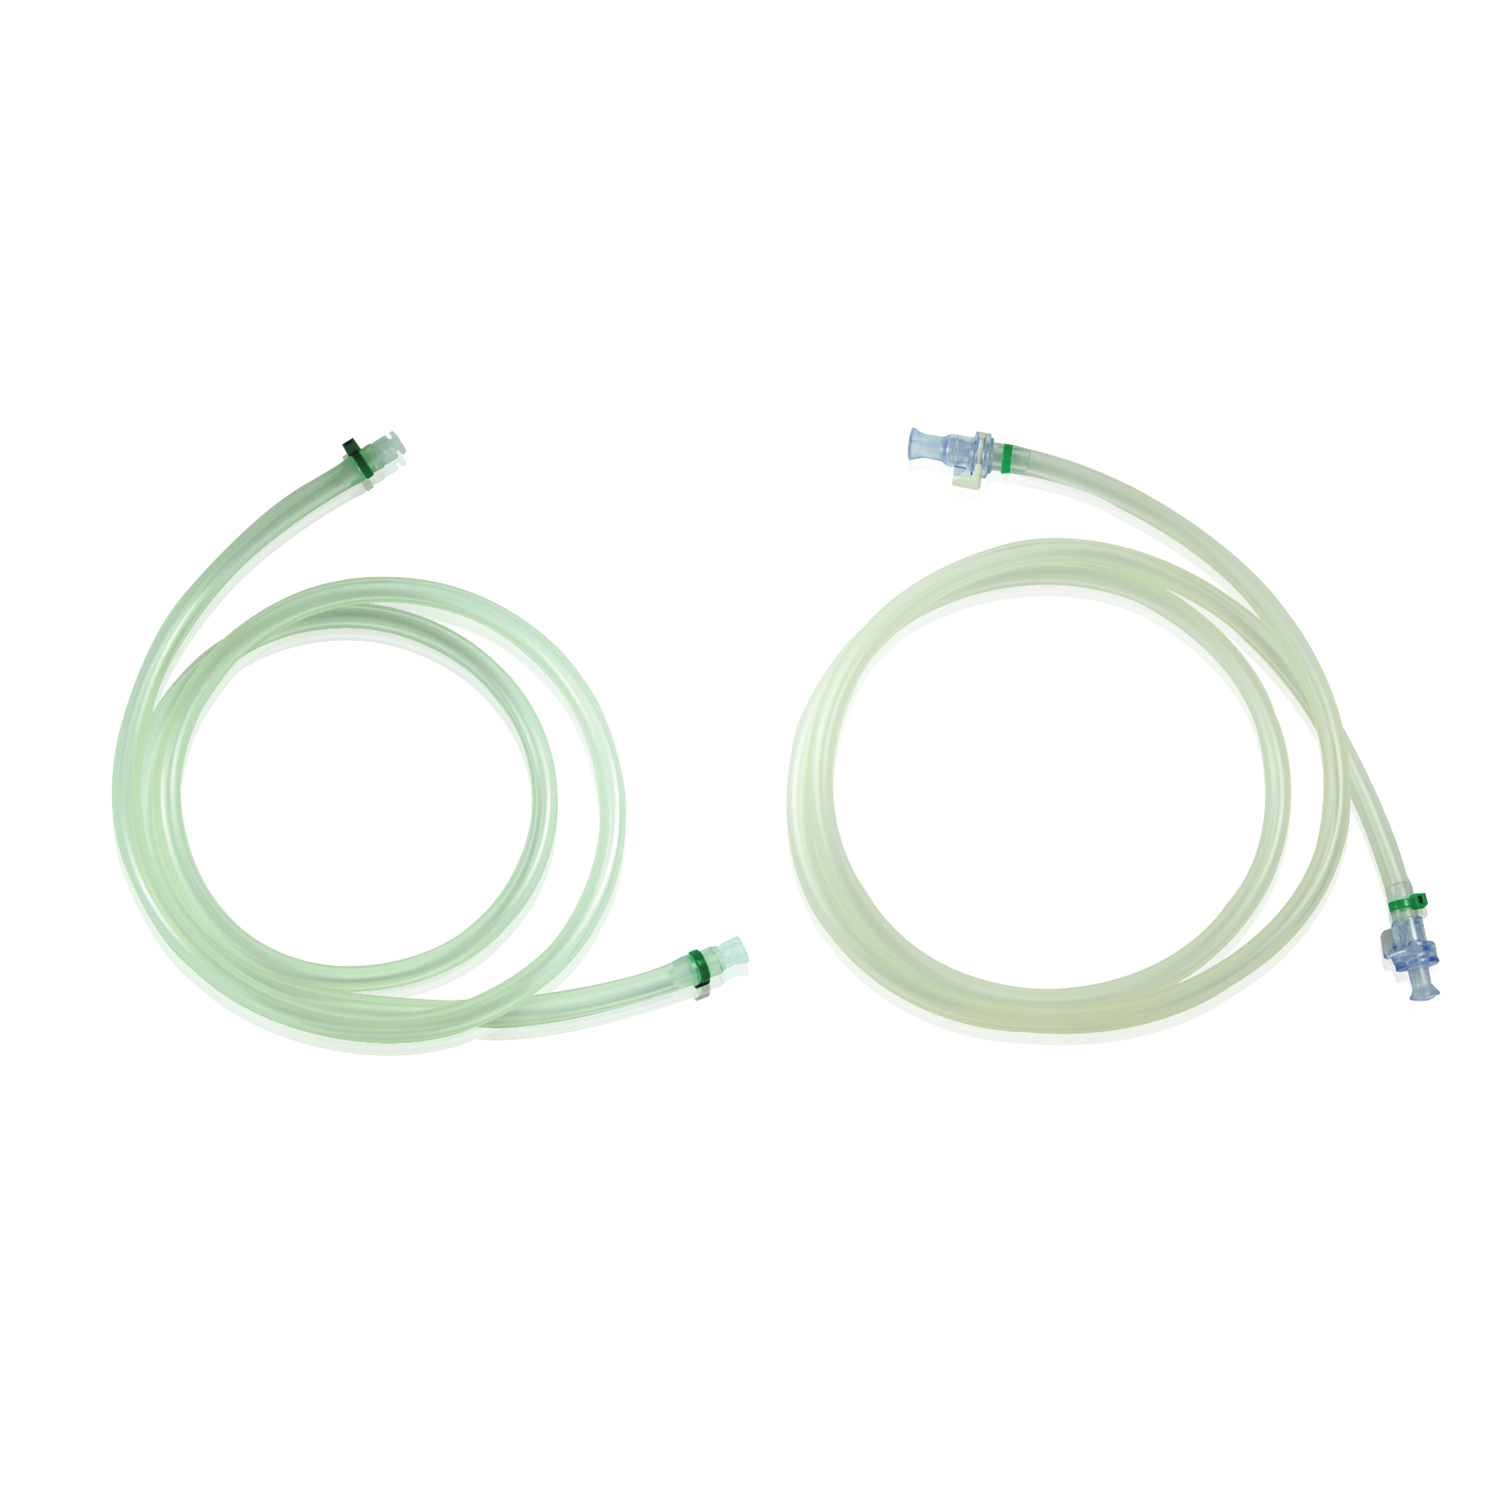 WHEATON® TPE Sterile Connection Kits, Luer Connectors, 3.18 mm ID, 1.6 mm Wall